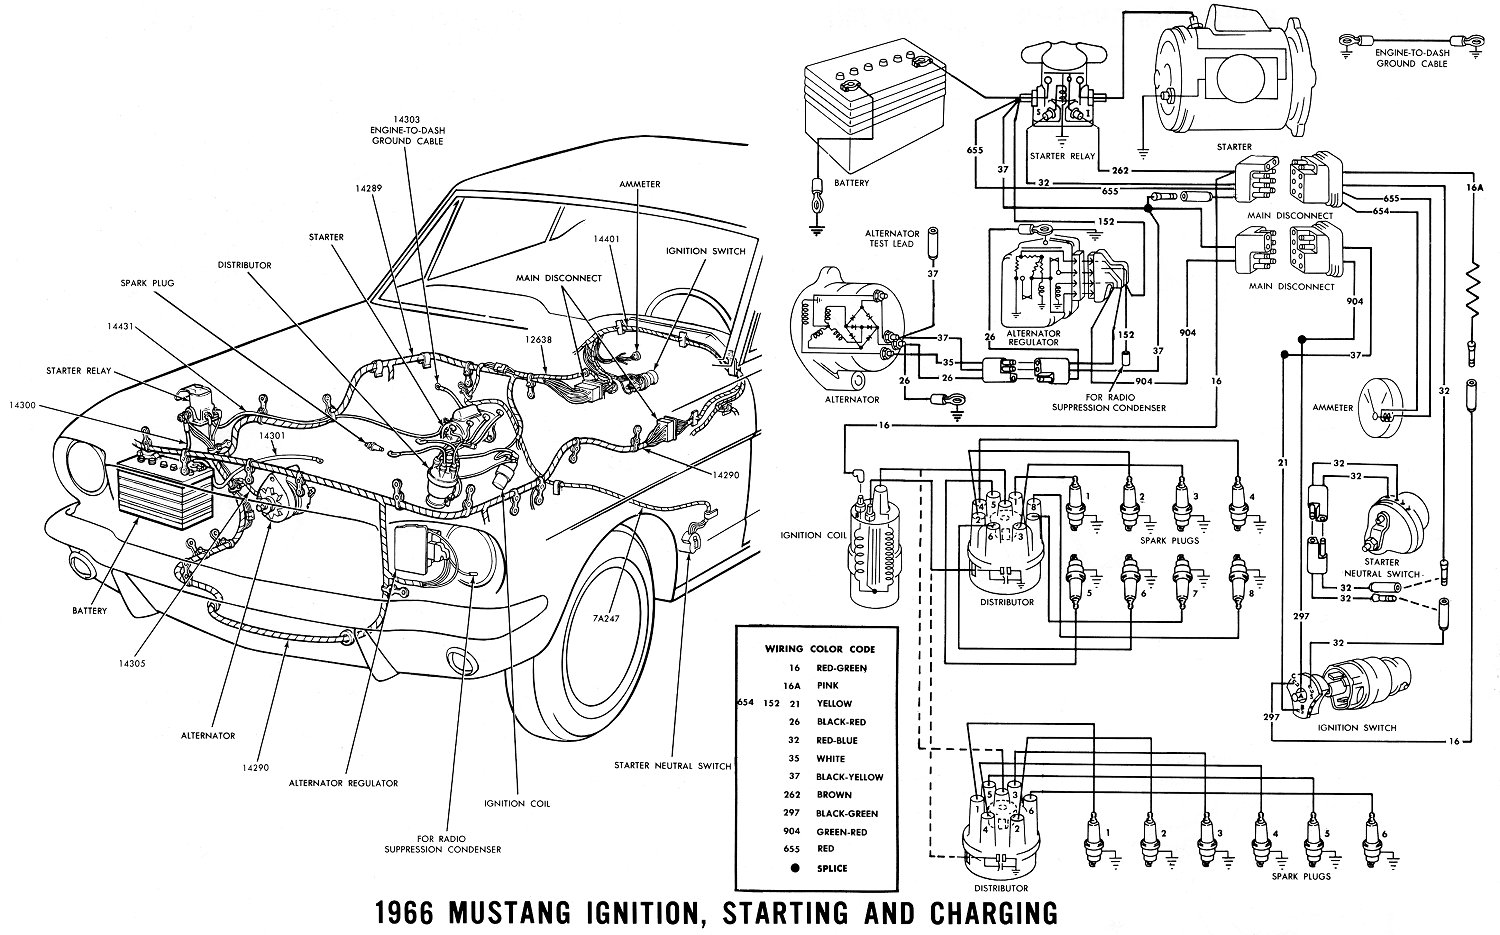 [SCHEMATICS_4UK]  CC85 1966 Mustang Fuse Box Location | Wiring Resources | 1966 Cadillac Fuse Box |  | Wiring Resources